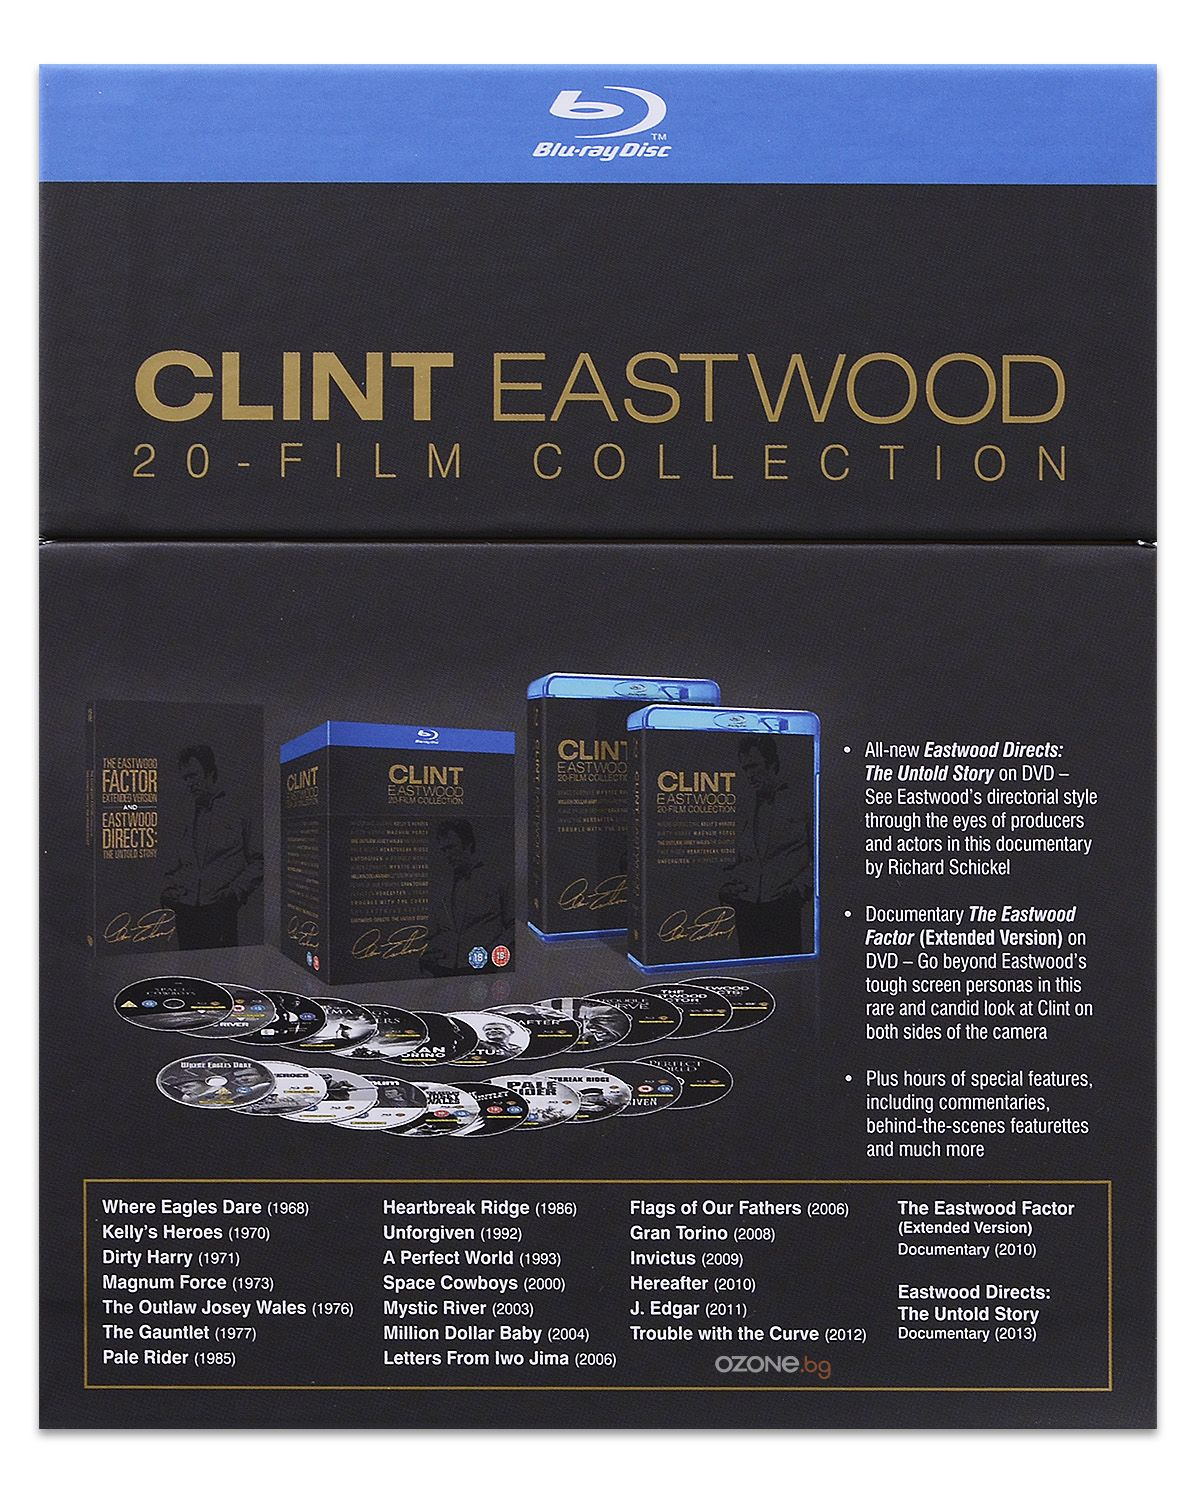 Clint Eastwood 20-Film Collection (Blu-Ray) - 5